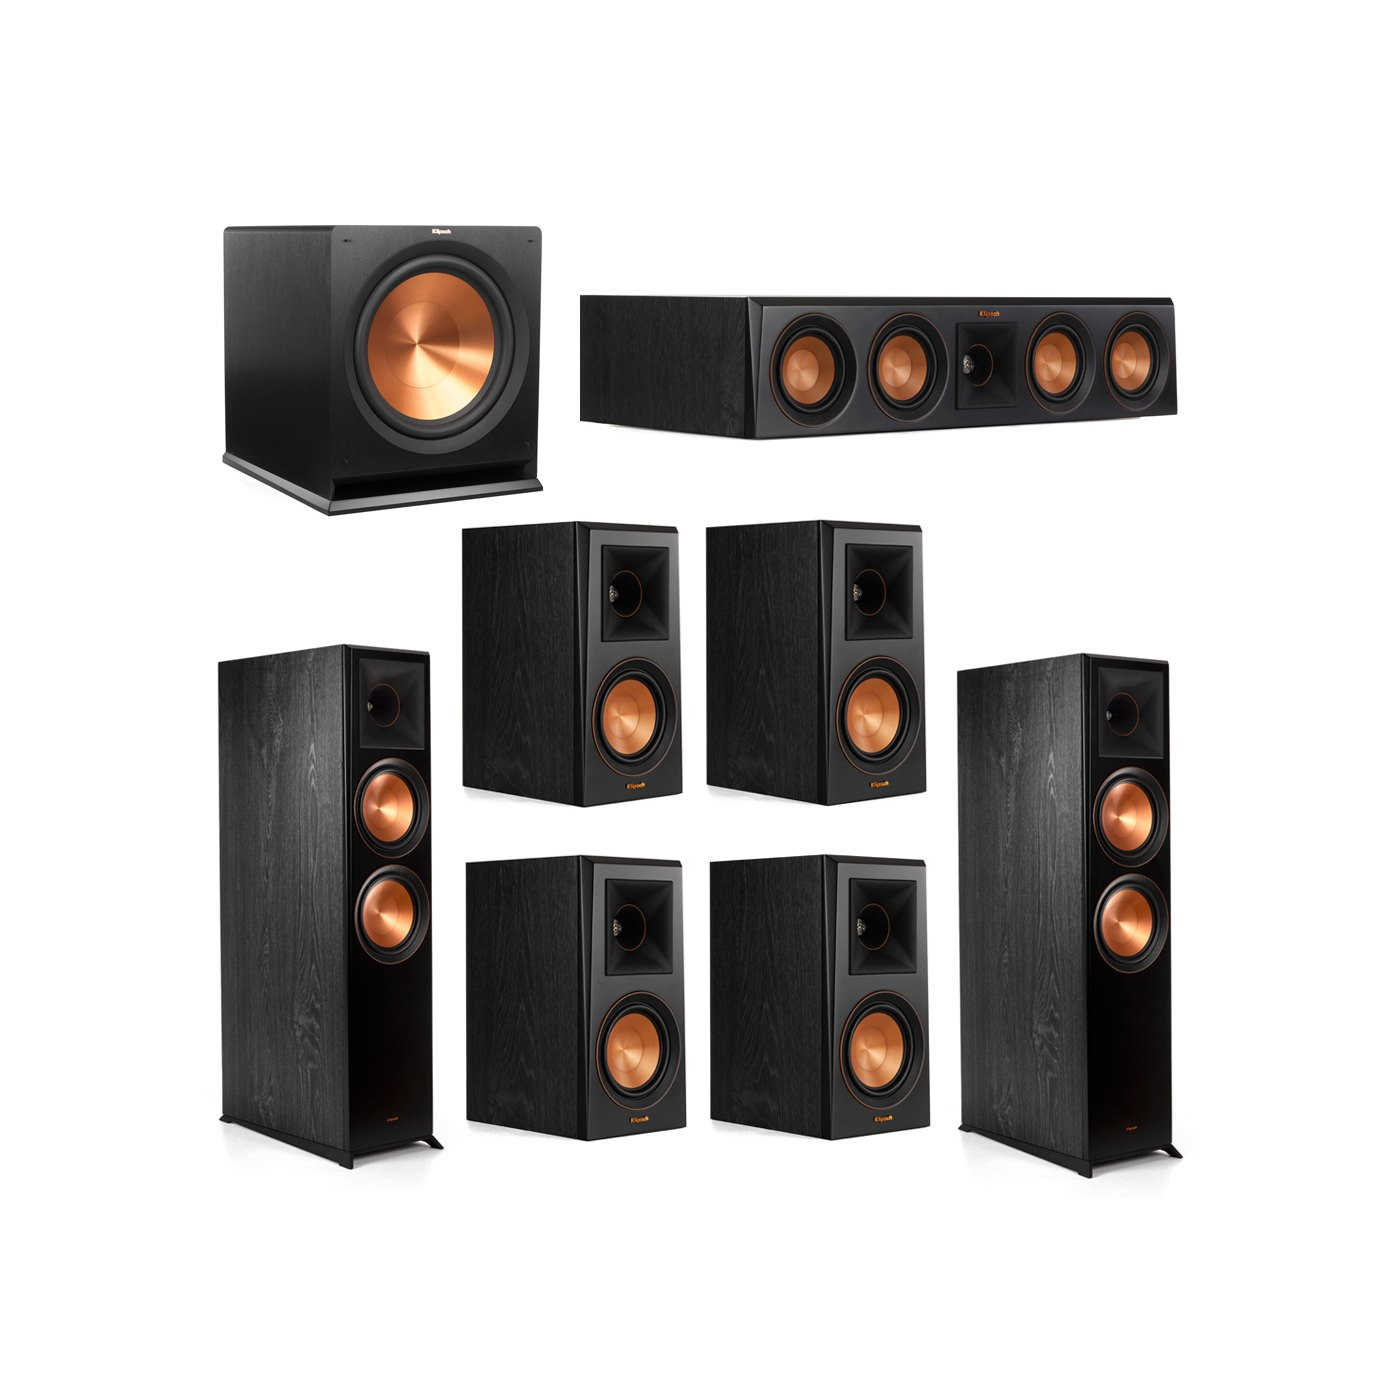 Klipsch 7.1.2 System - 2 RP-8060FA Dolby Atmos Speakers, 1 RP-404C, 4 RP-500M Speakers, 1 R-115SW